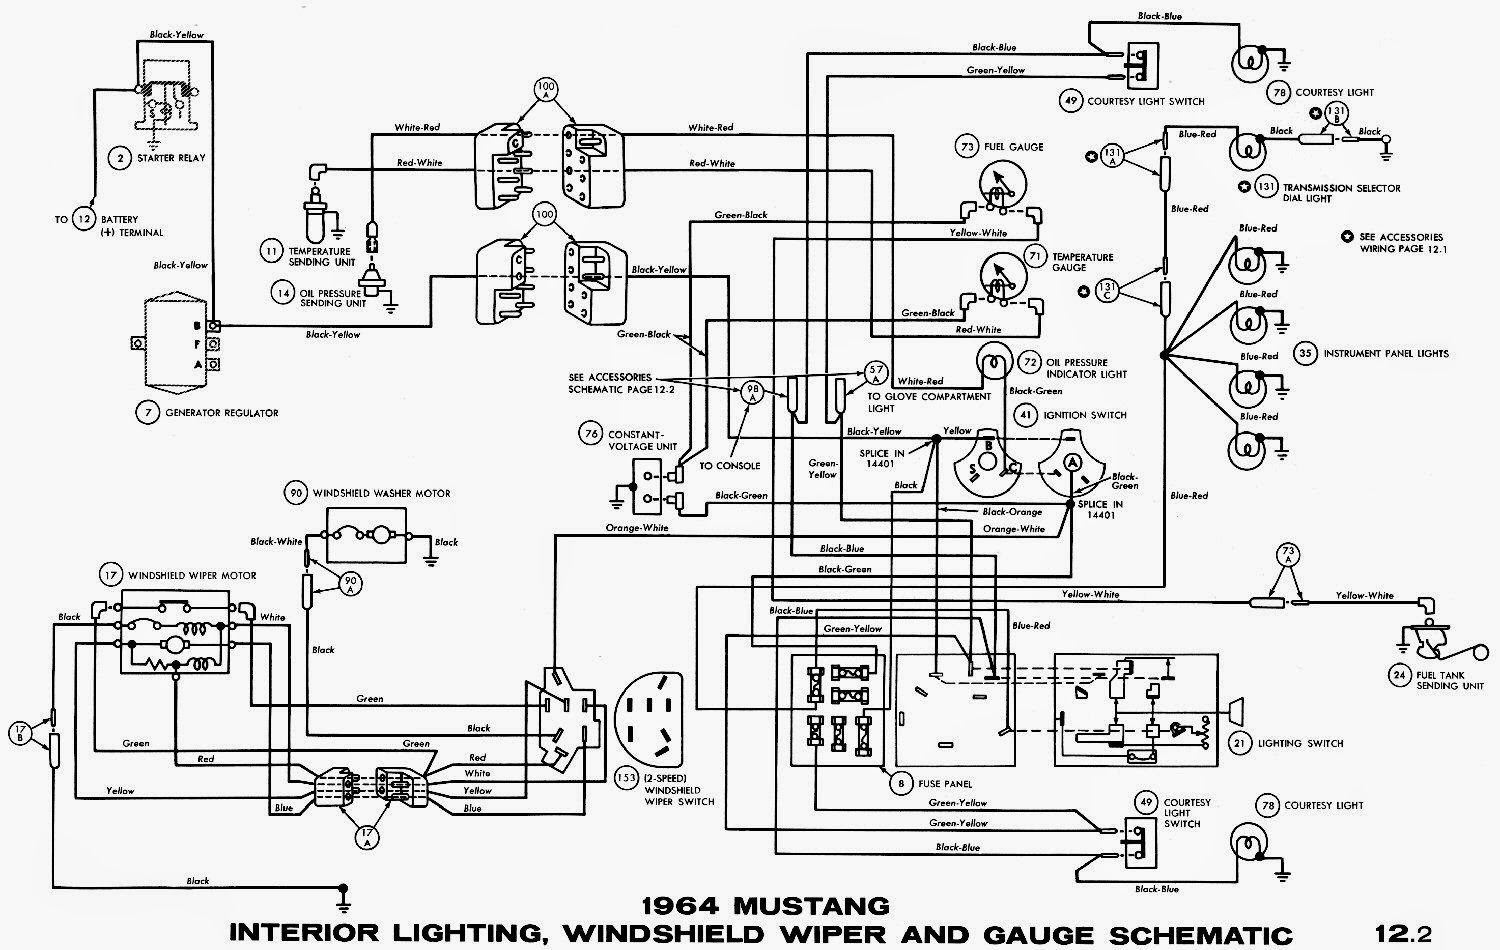 69 mustang fuel tank wiring diagram free download 69 mustang fuel tank wiring diagram